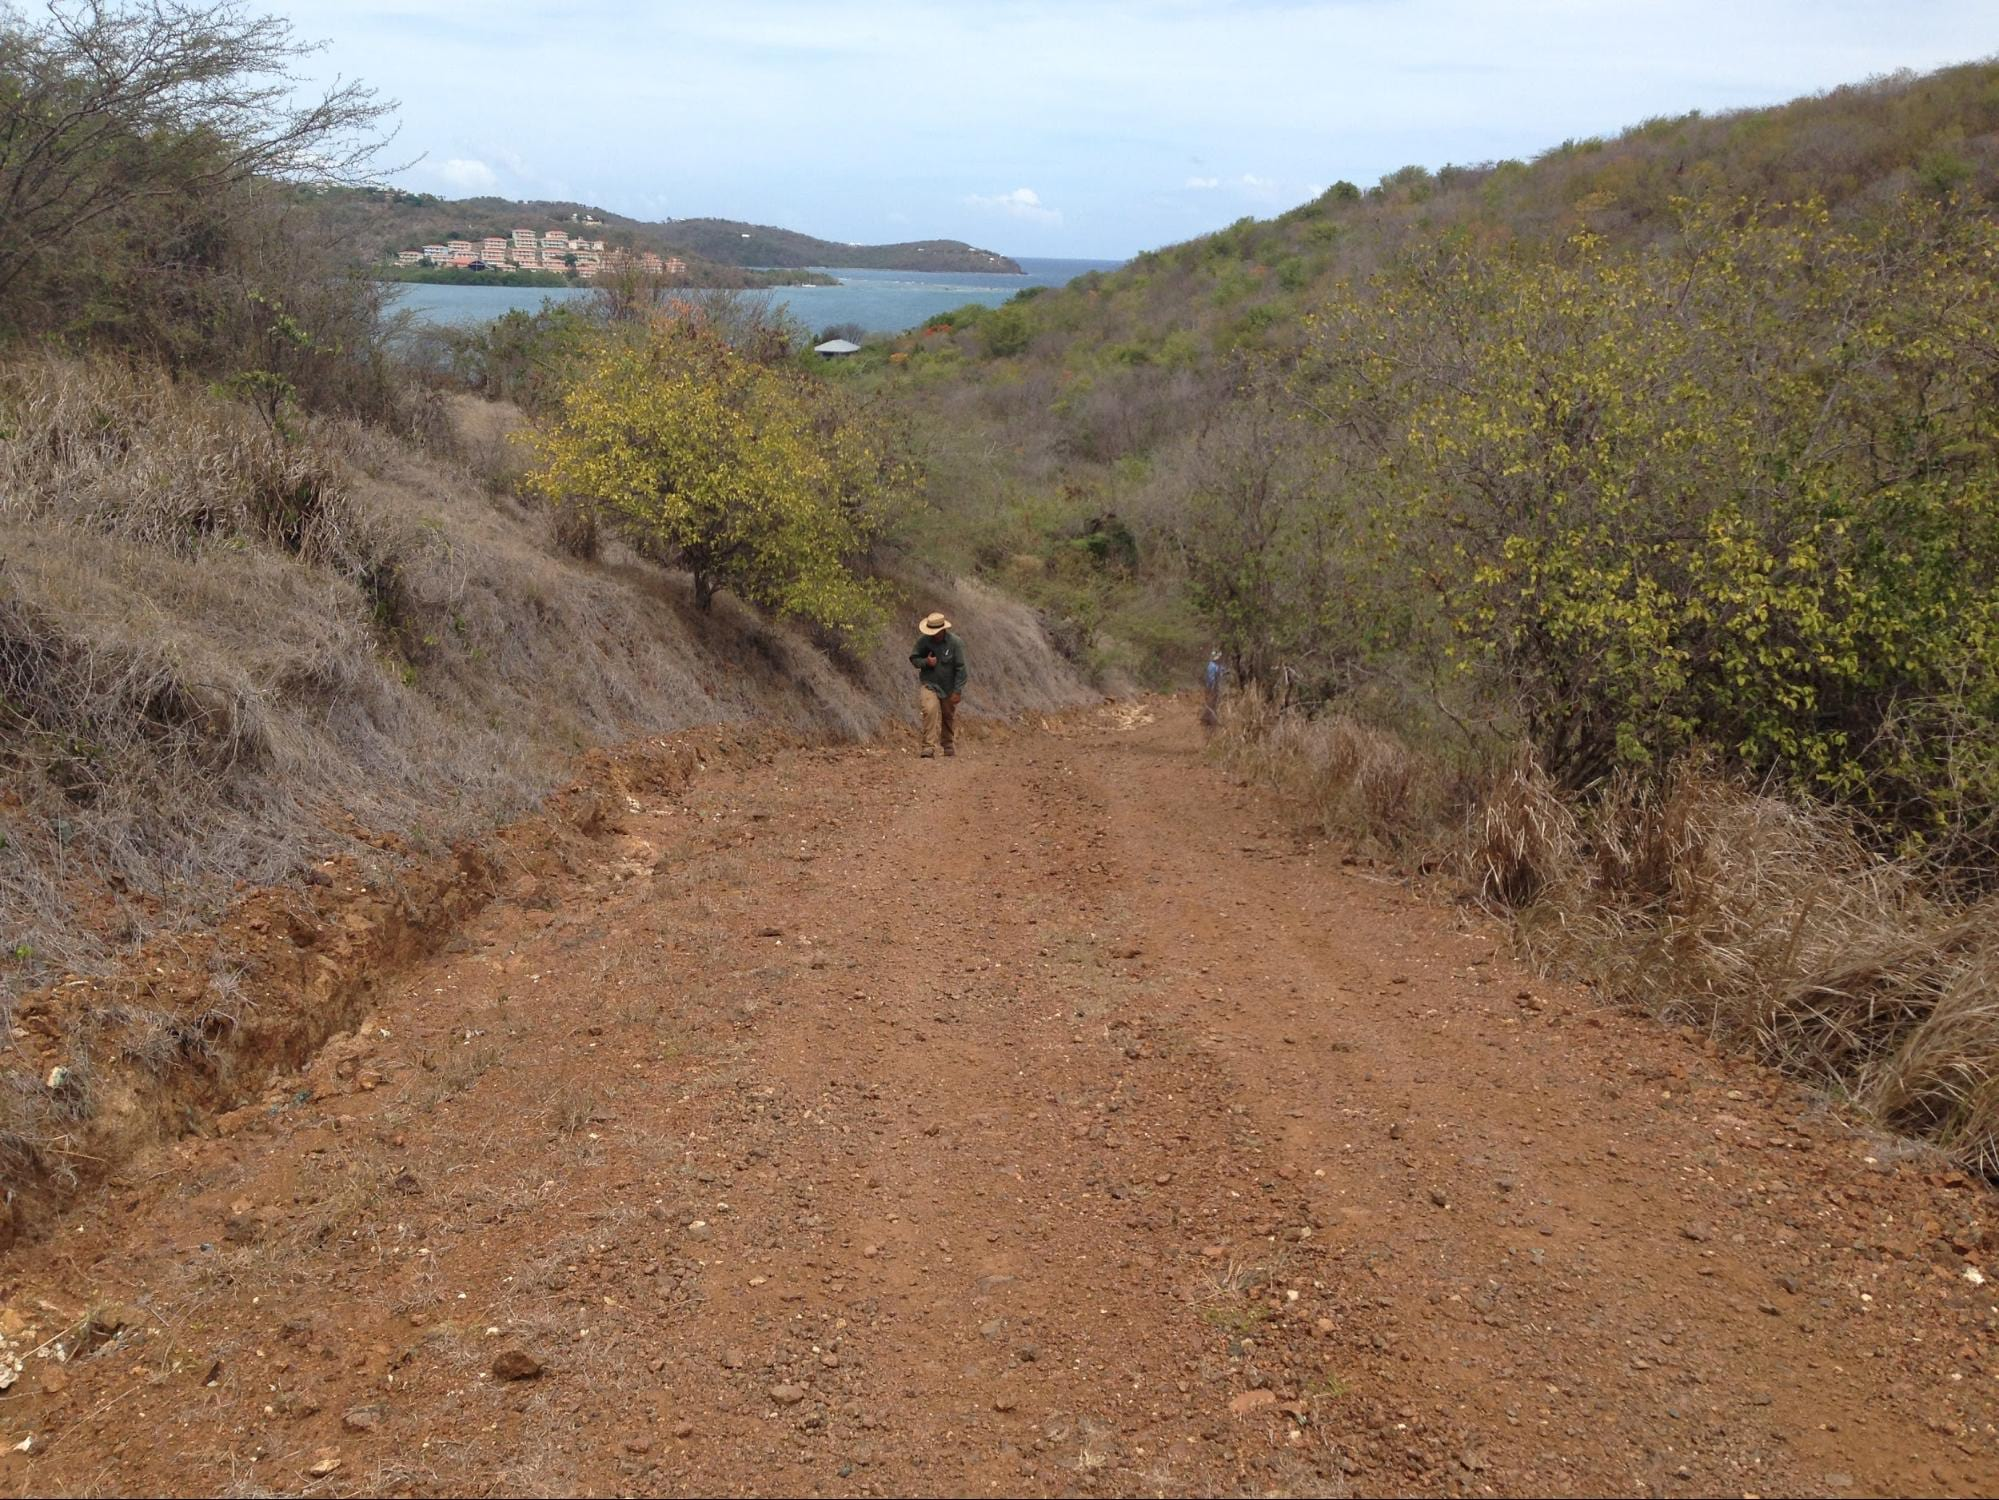 Unpaved road on the island of Culebra. Unpaved roads on the island are significant sources of sediment pollution to nearshore seagrass and coral reef habitats.